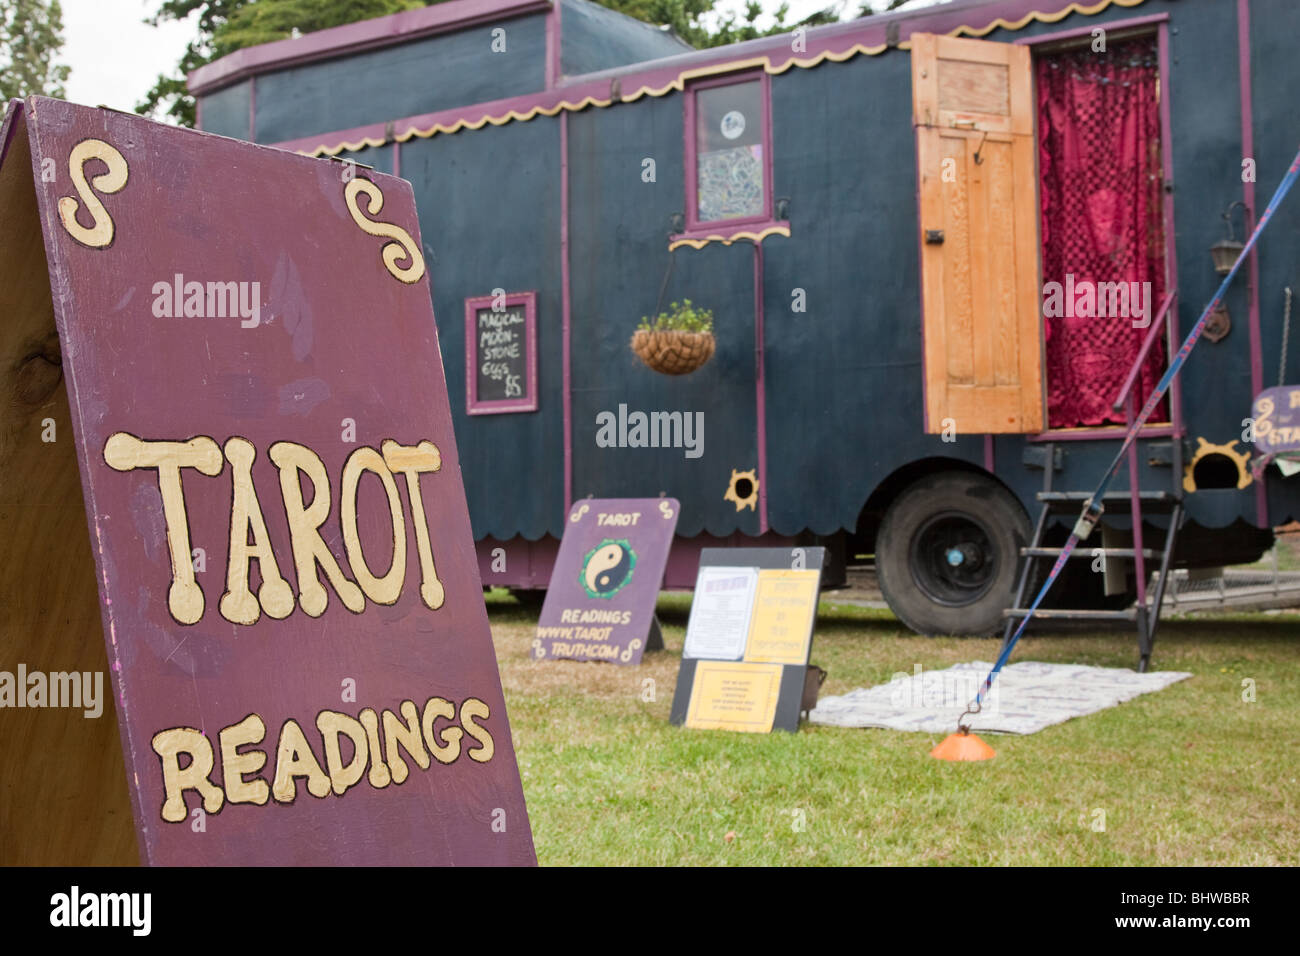 Tarot Readings Sign with Gypsy House Truck in Background, Masterton, New Zealand Stock Photo